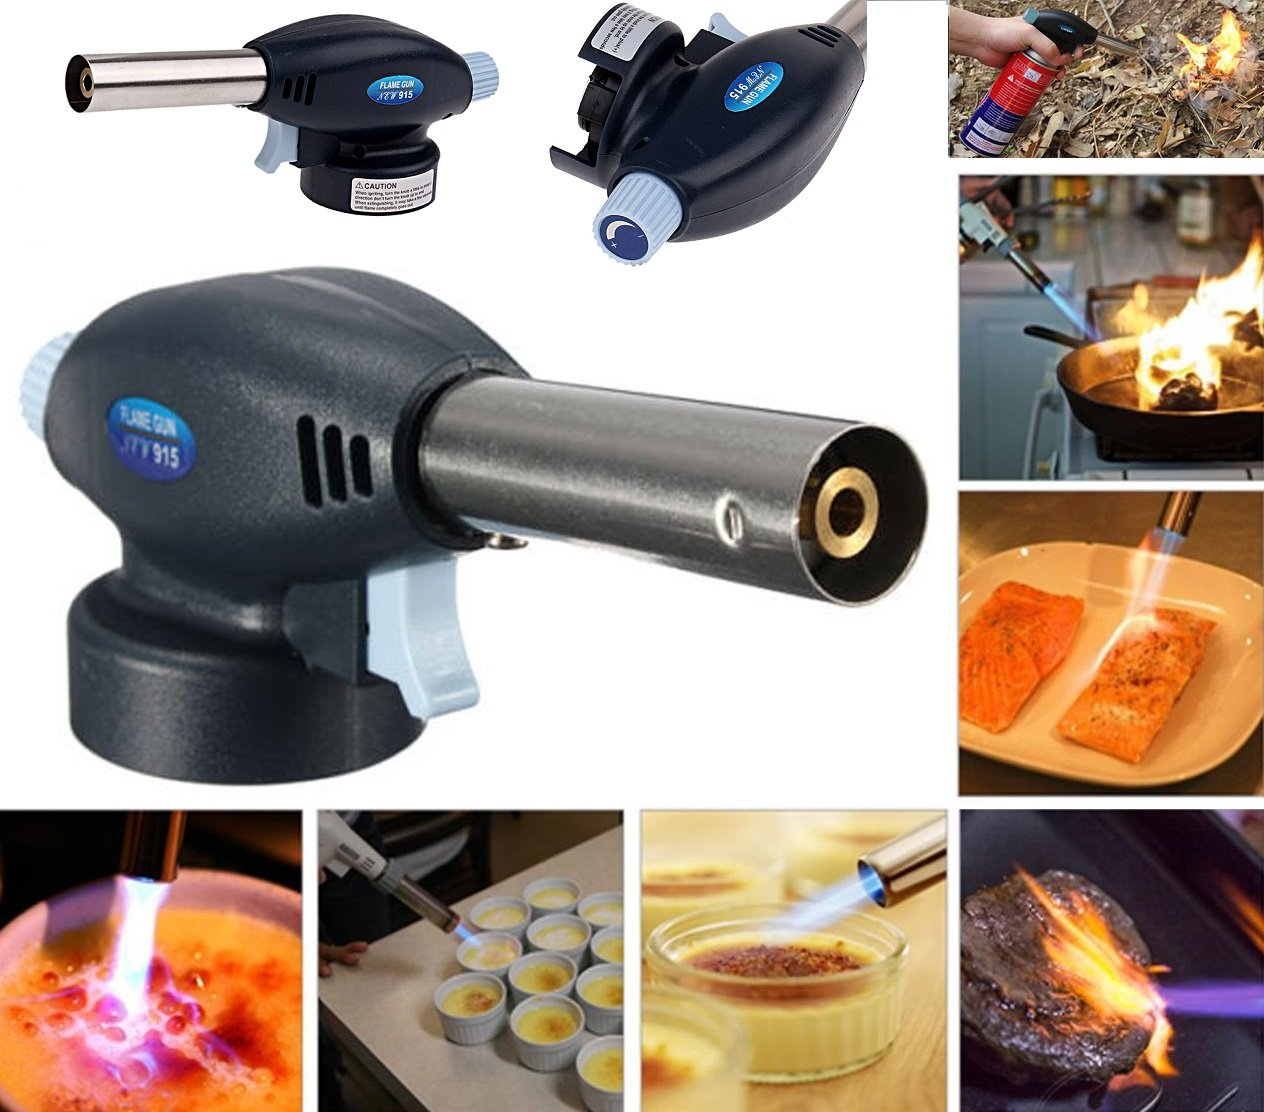 Butane Gas Powered Blowtorch Cooking Catering Creme Brulee Culinary Tarts Pies Tool HHS®